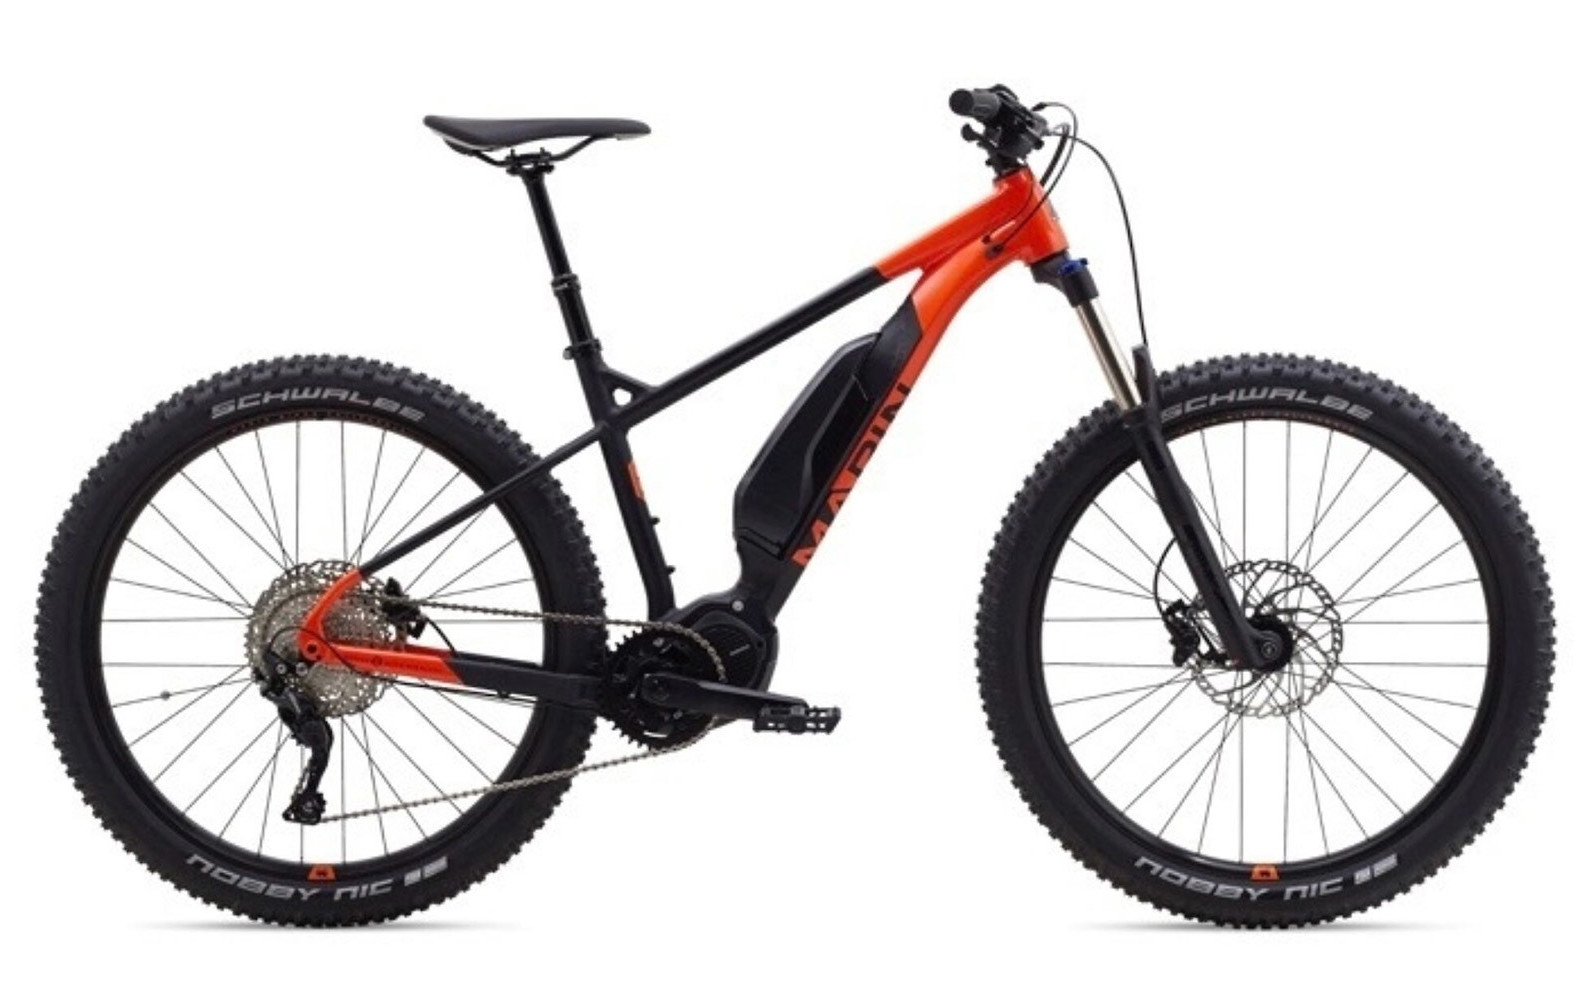 2019 Marin Nail Trail E1 E-Bike